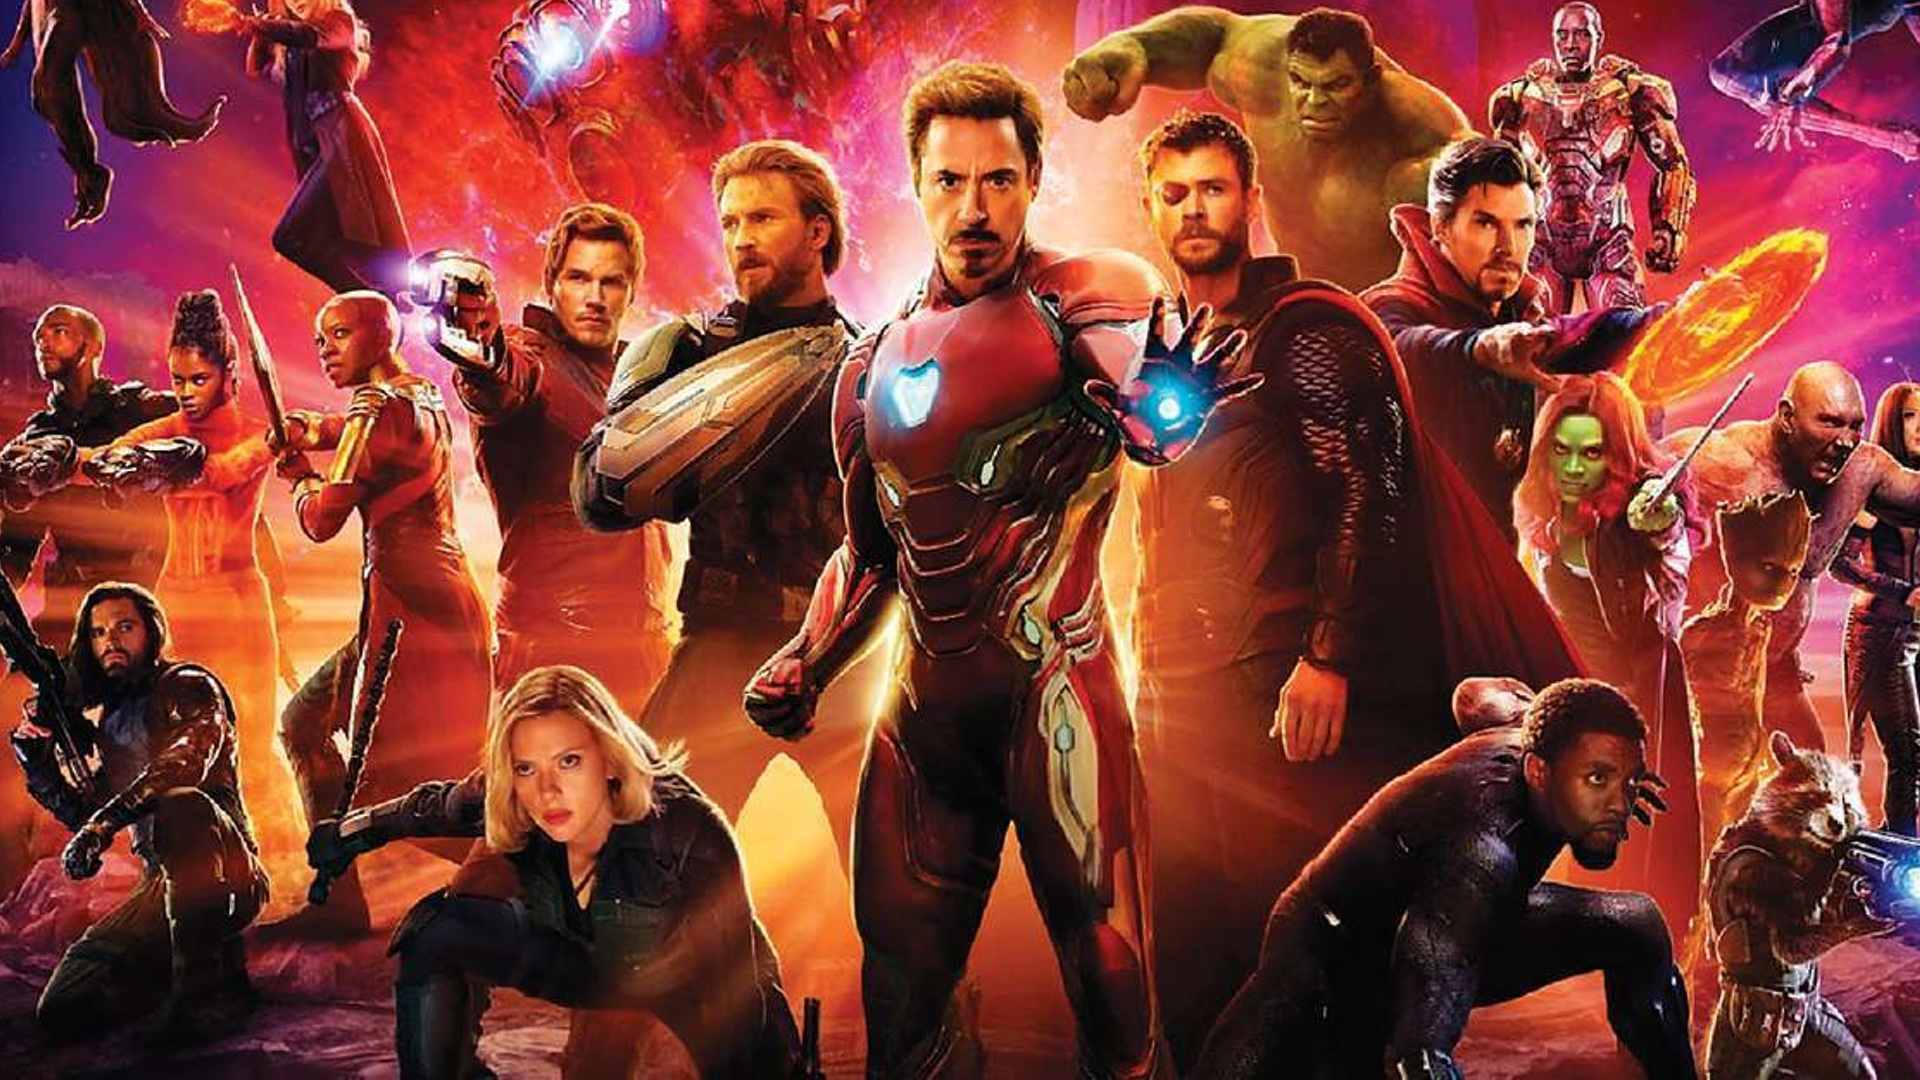 it-sounds-like-avengers-4-wont-be-the-last-avengers-movie-and-marvel-is-planning-to-launch-a-new-big-event-franchise-social.jpg